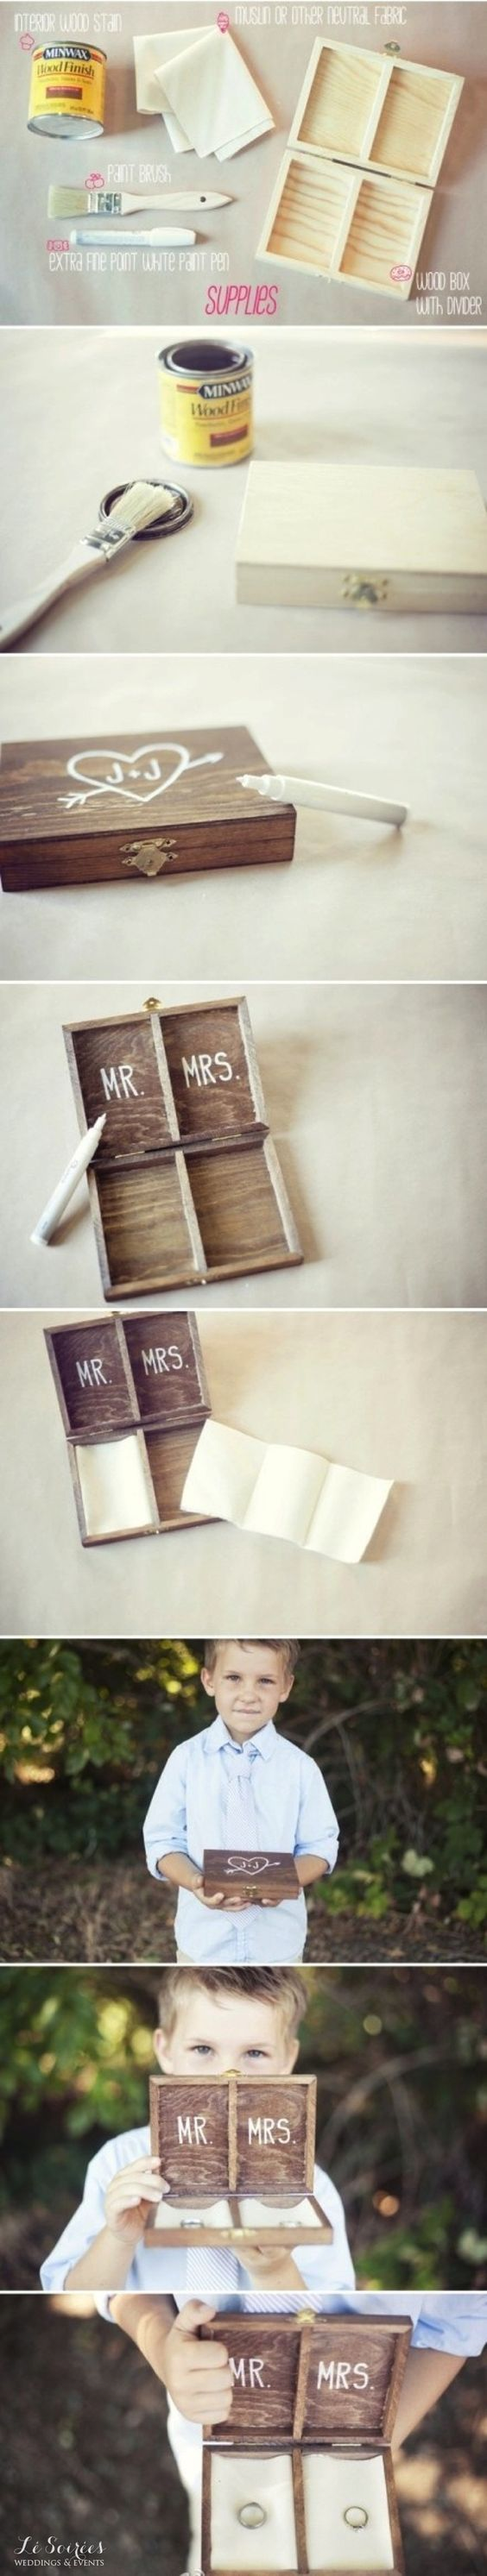 Ring bearer's box instead of a pillow. | 23 Unconventional But Awesome Wedding Ideas